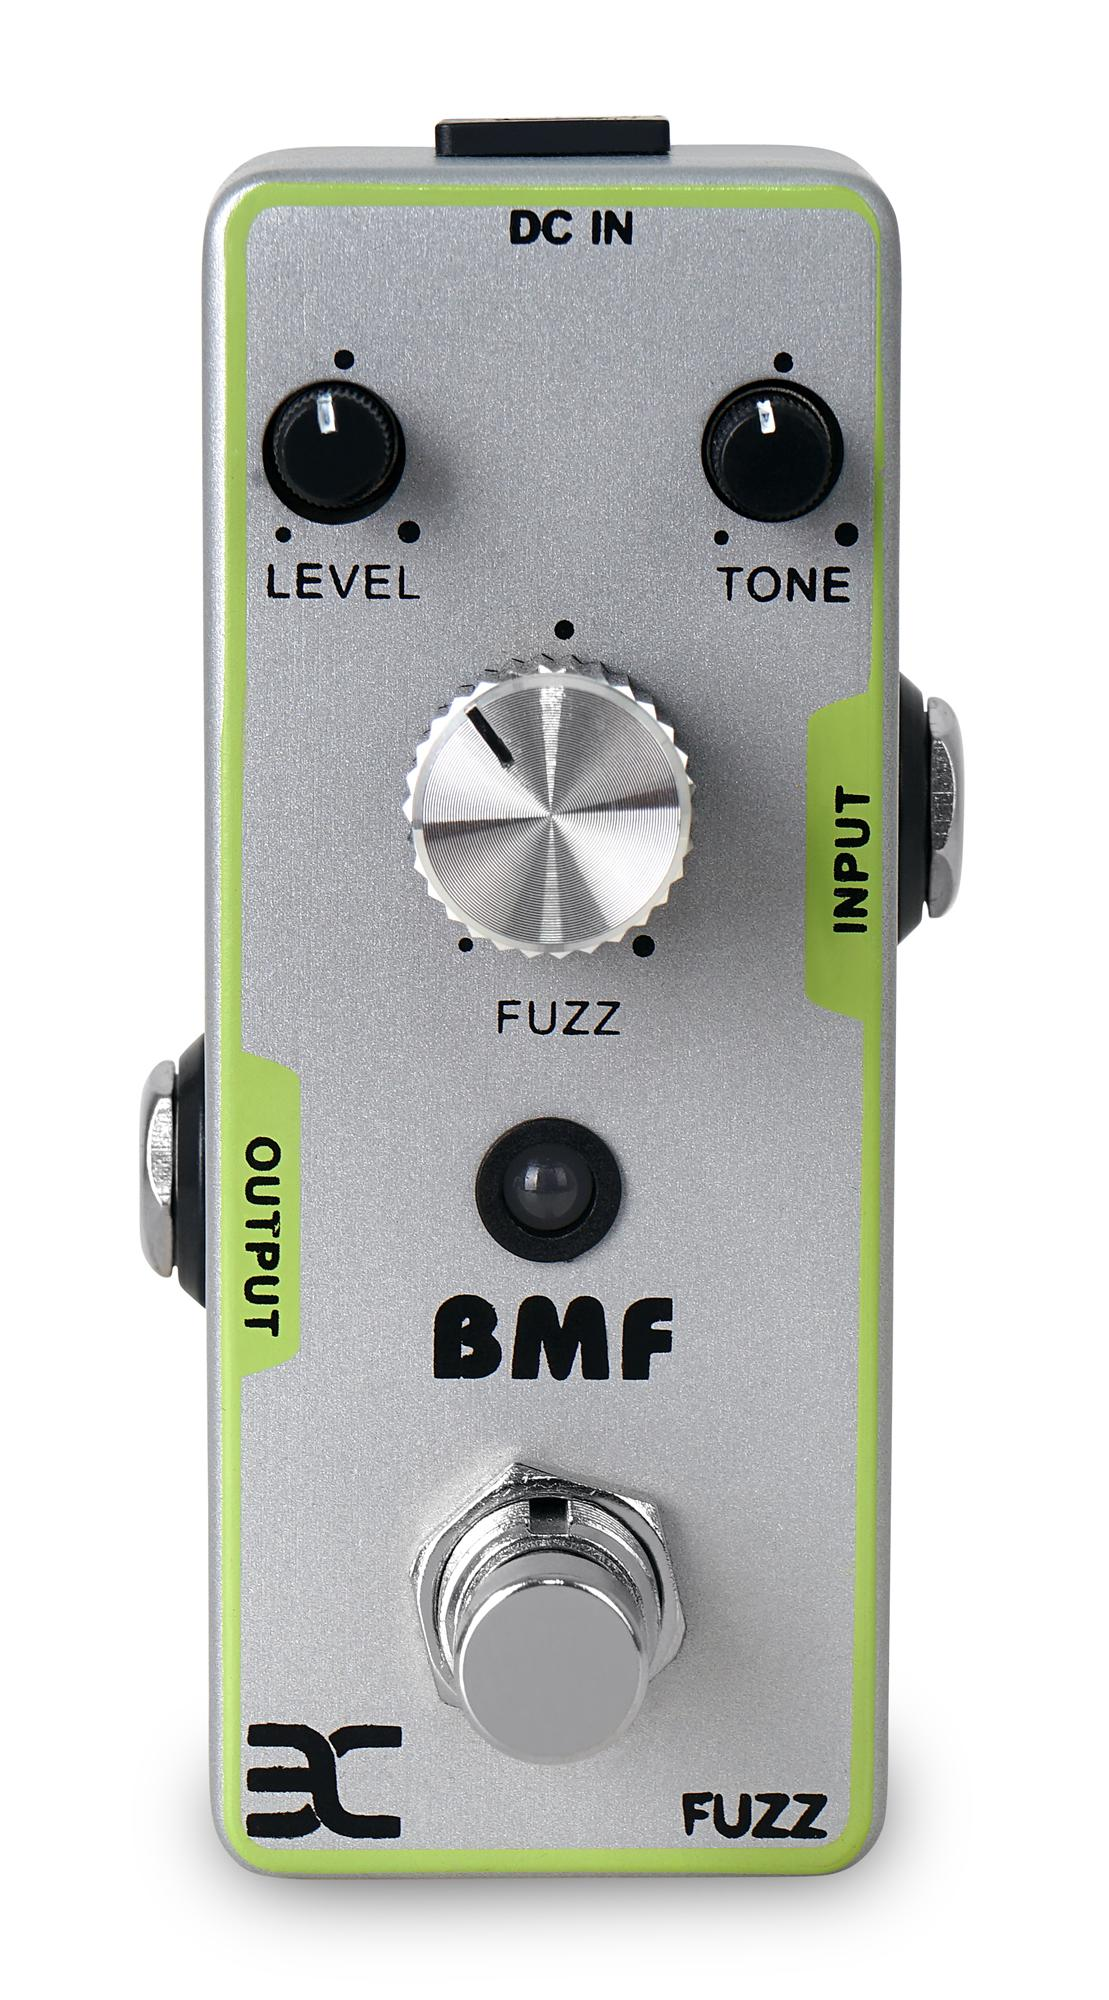 eno tc 18 bmf fuzz effect pedal. Black Bedroom Furniture Sets. Home Design Ideas